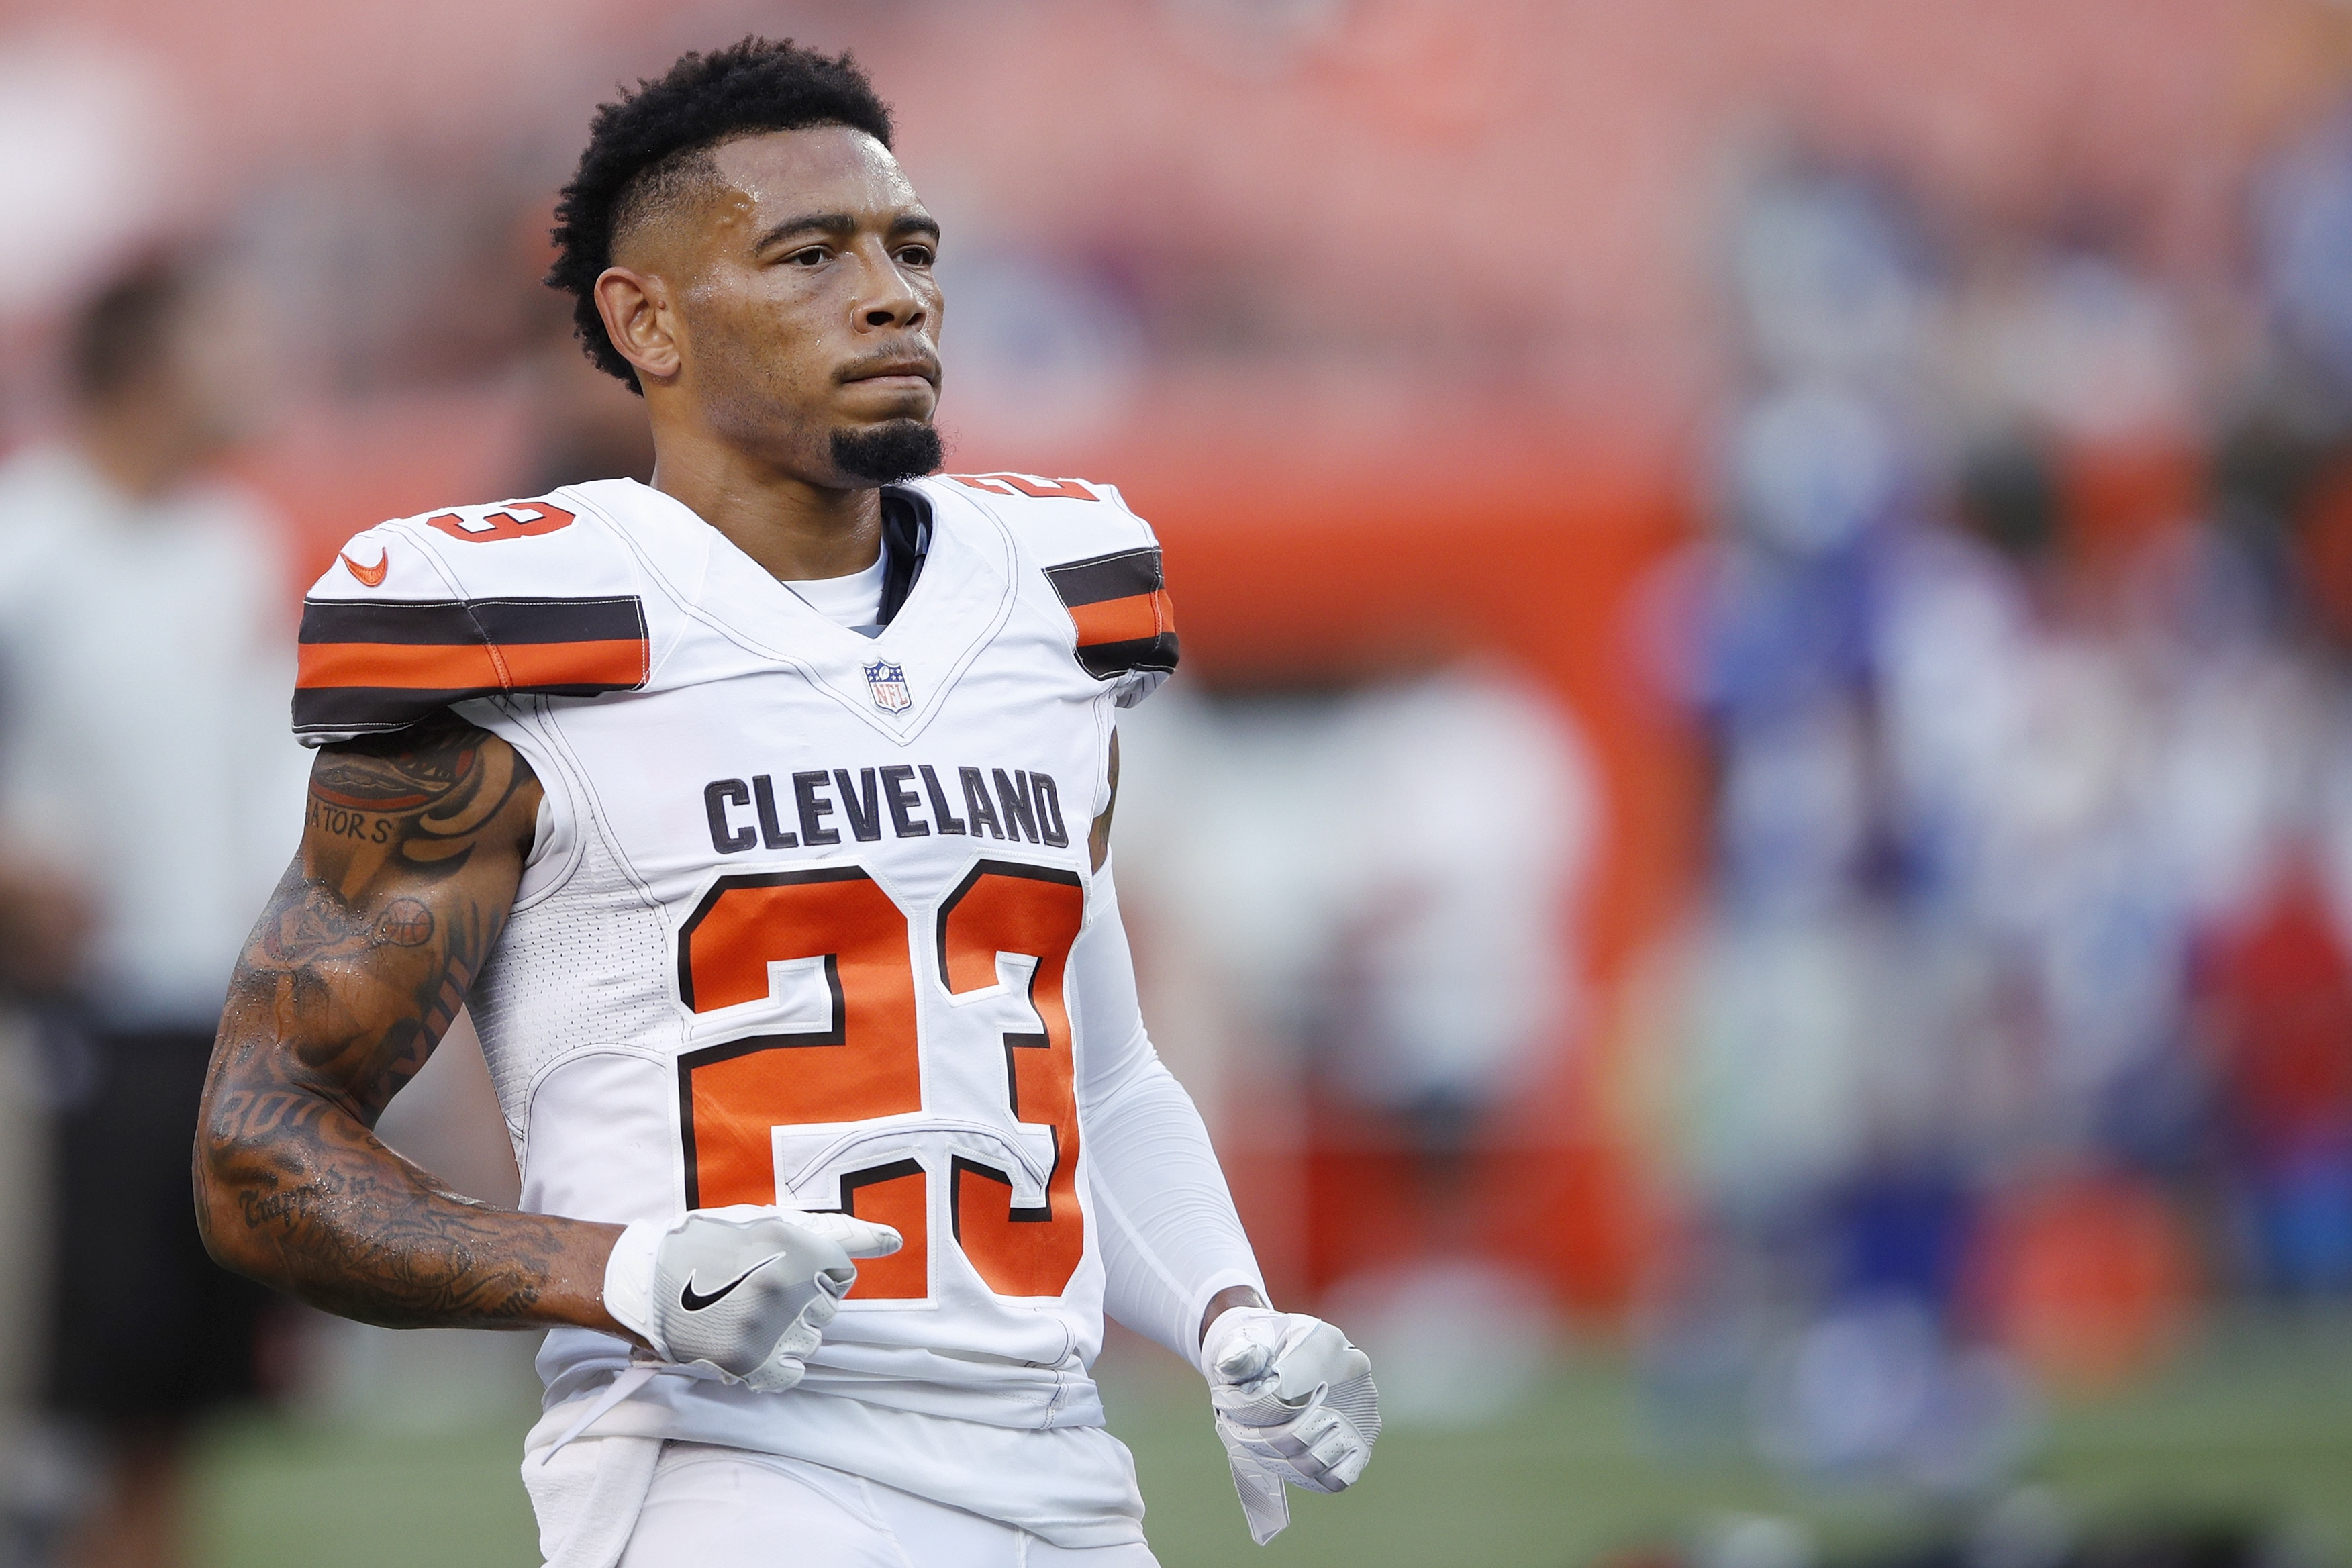 Browns Cut CB Joe Haden; Steelers Reportedly Interested In Him